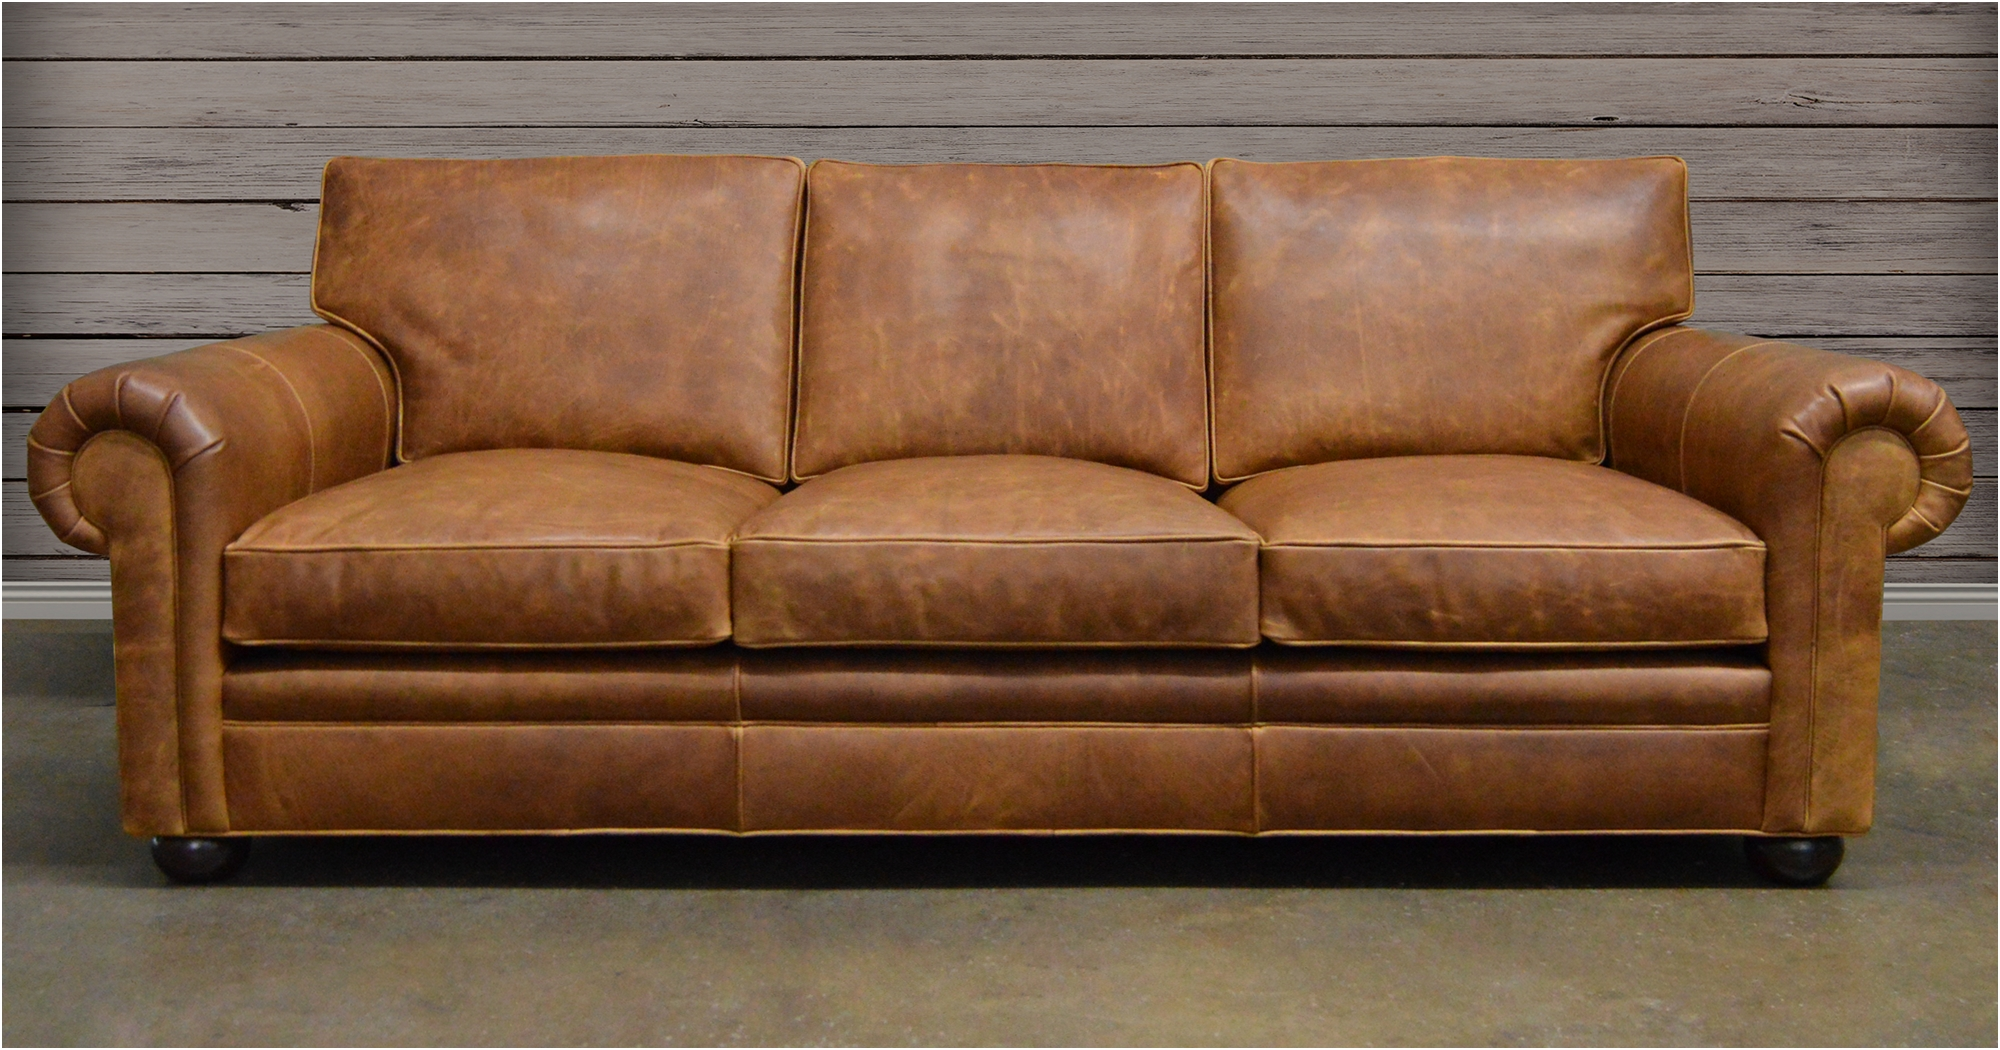 Well Known Made In North Carolina Sectional Sofas Regarding Sofa Custom Leather Canada Cushions Sectional Toronto Sofas Made (View 20 of 20)